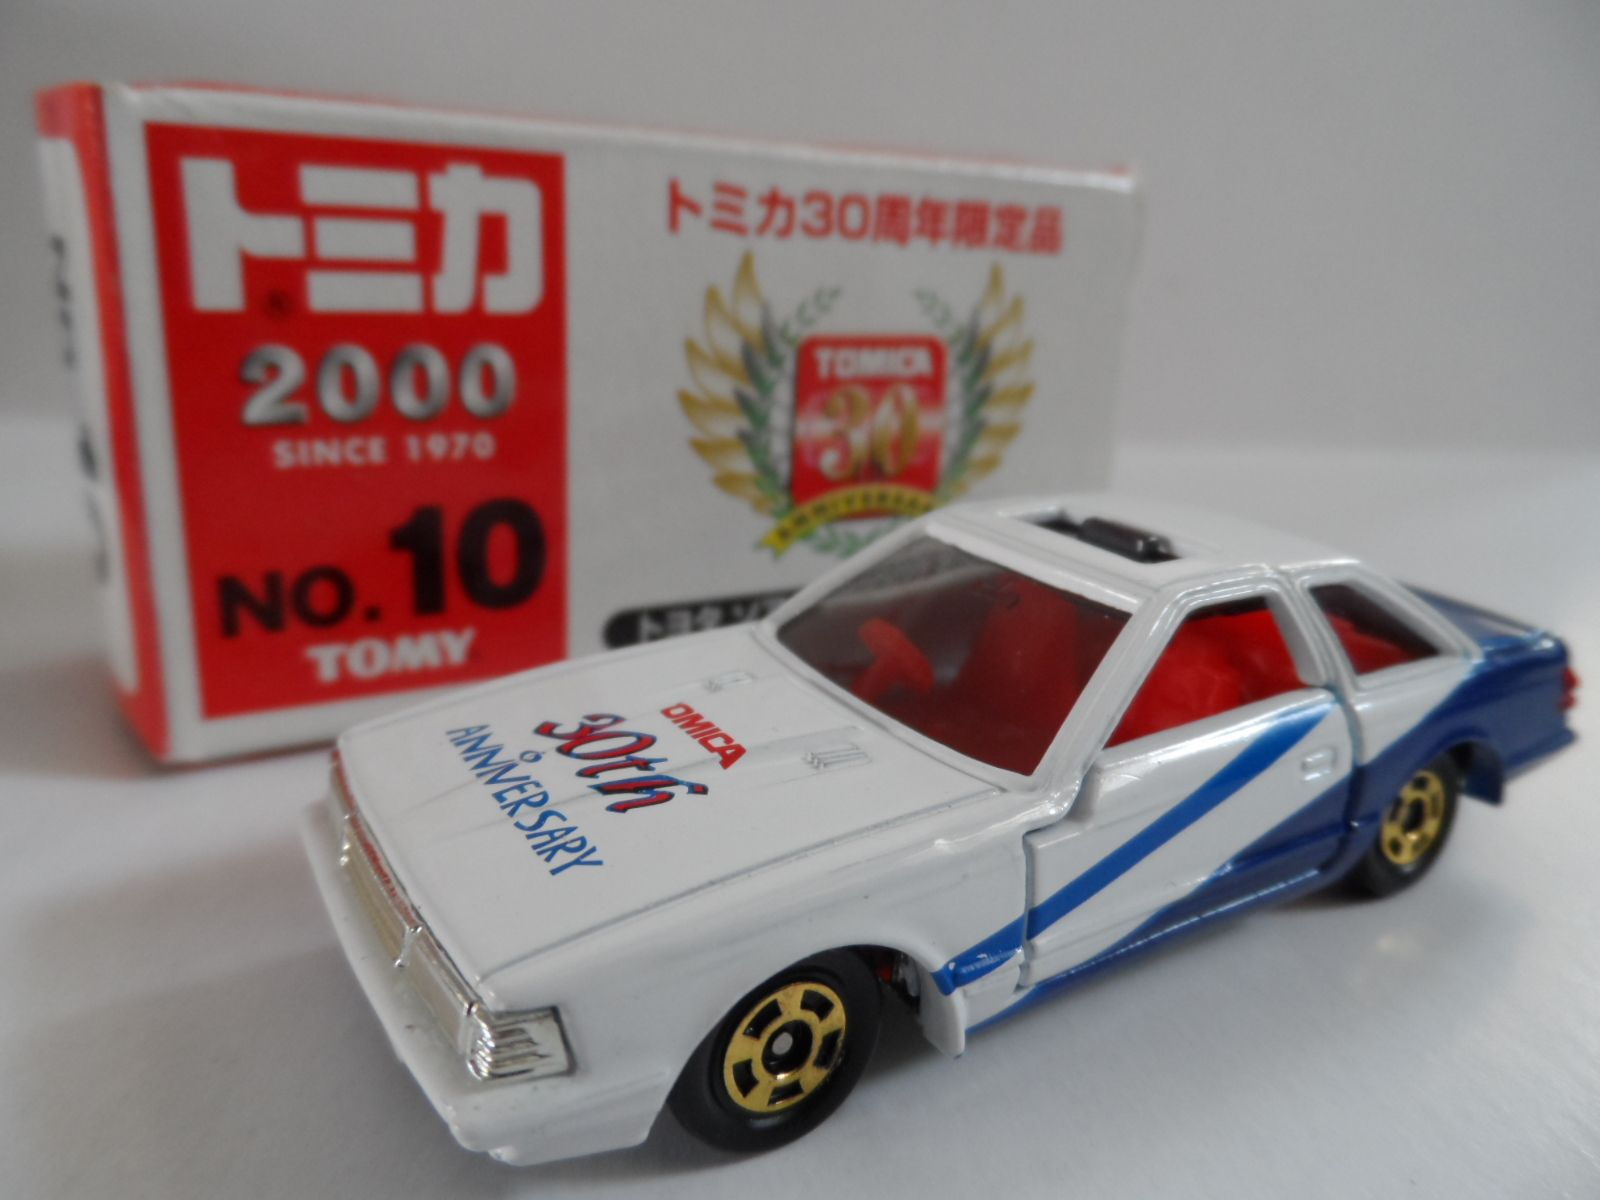 Tomy takara tomica 30th anniversary limited edition toyota soarer 2800gt